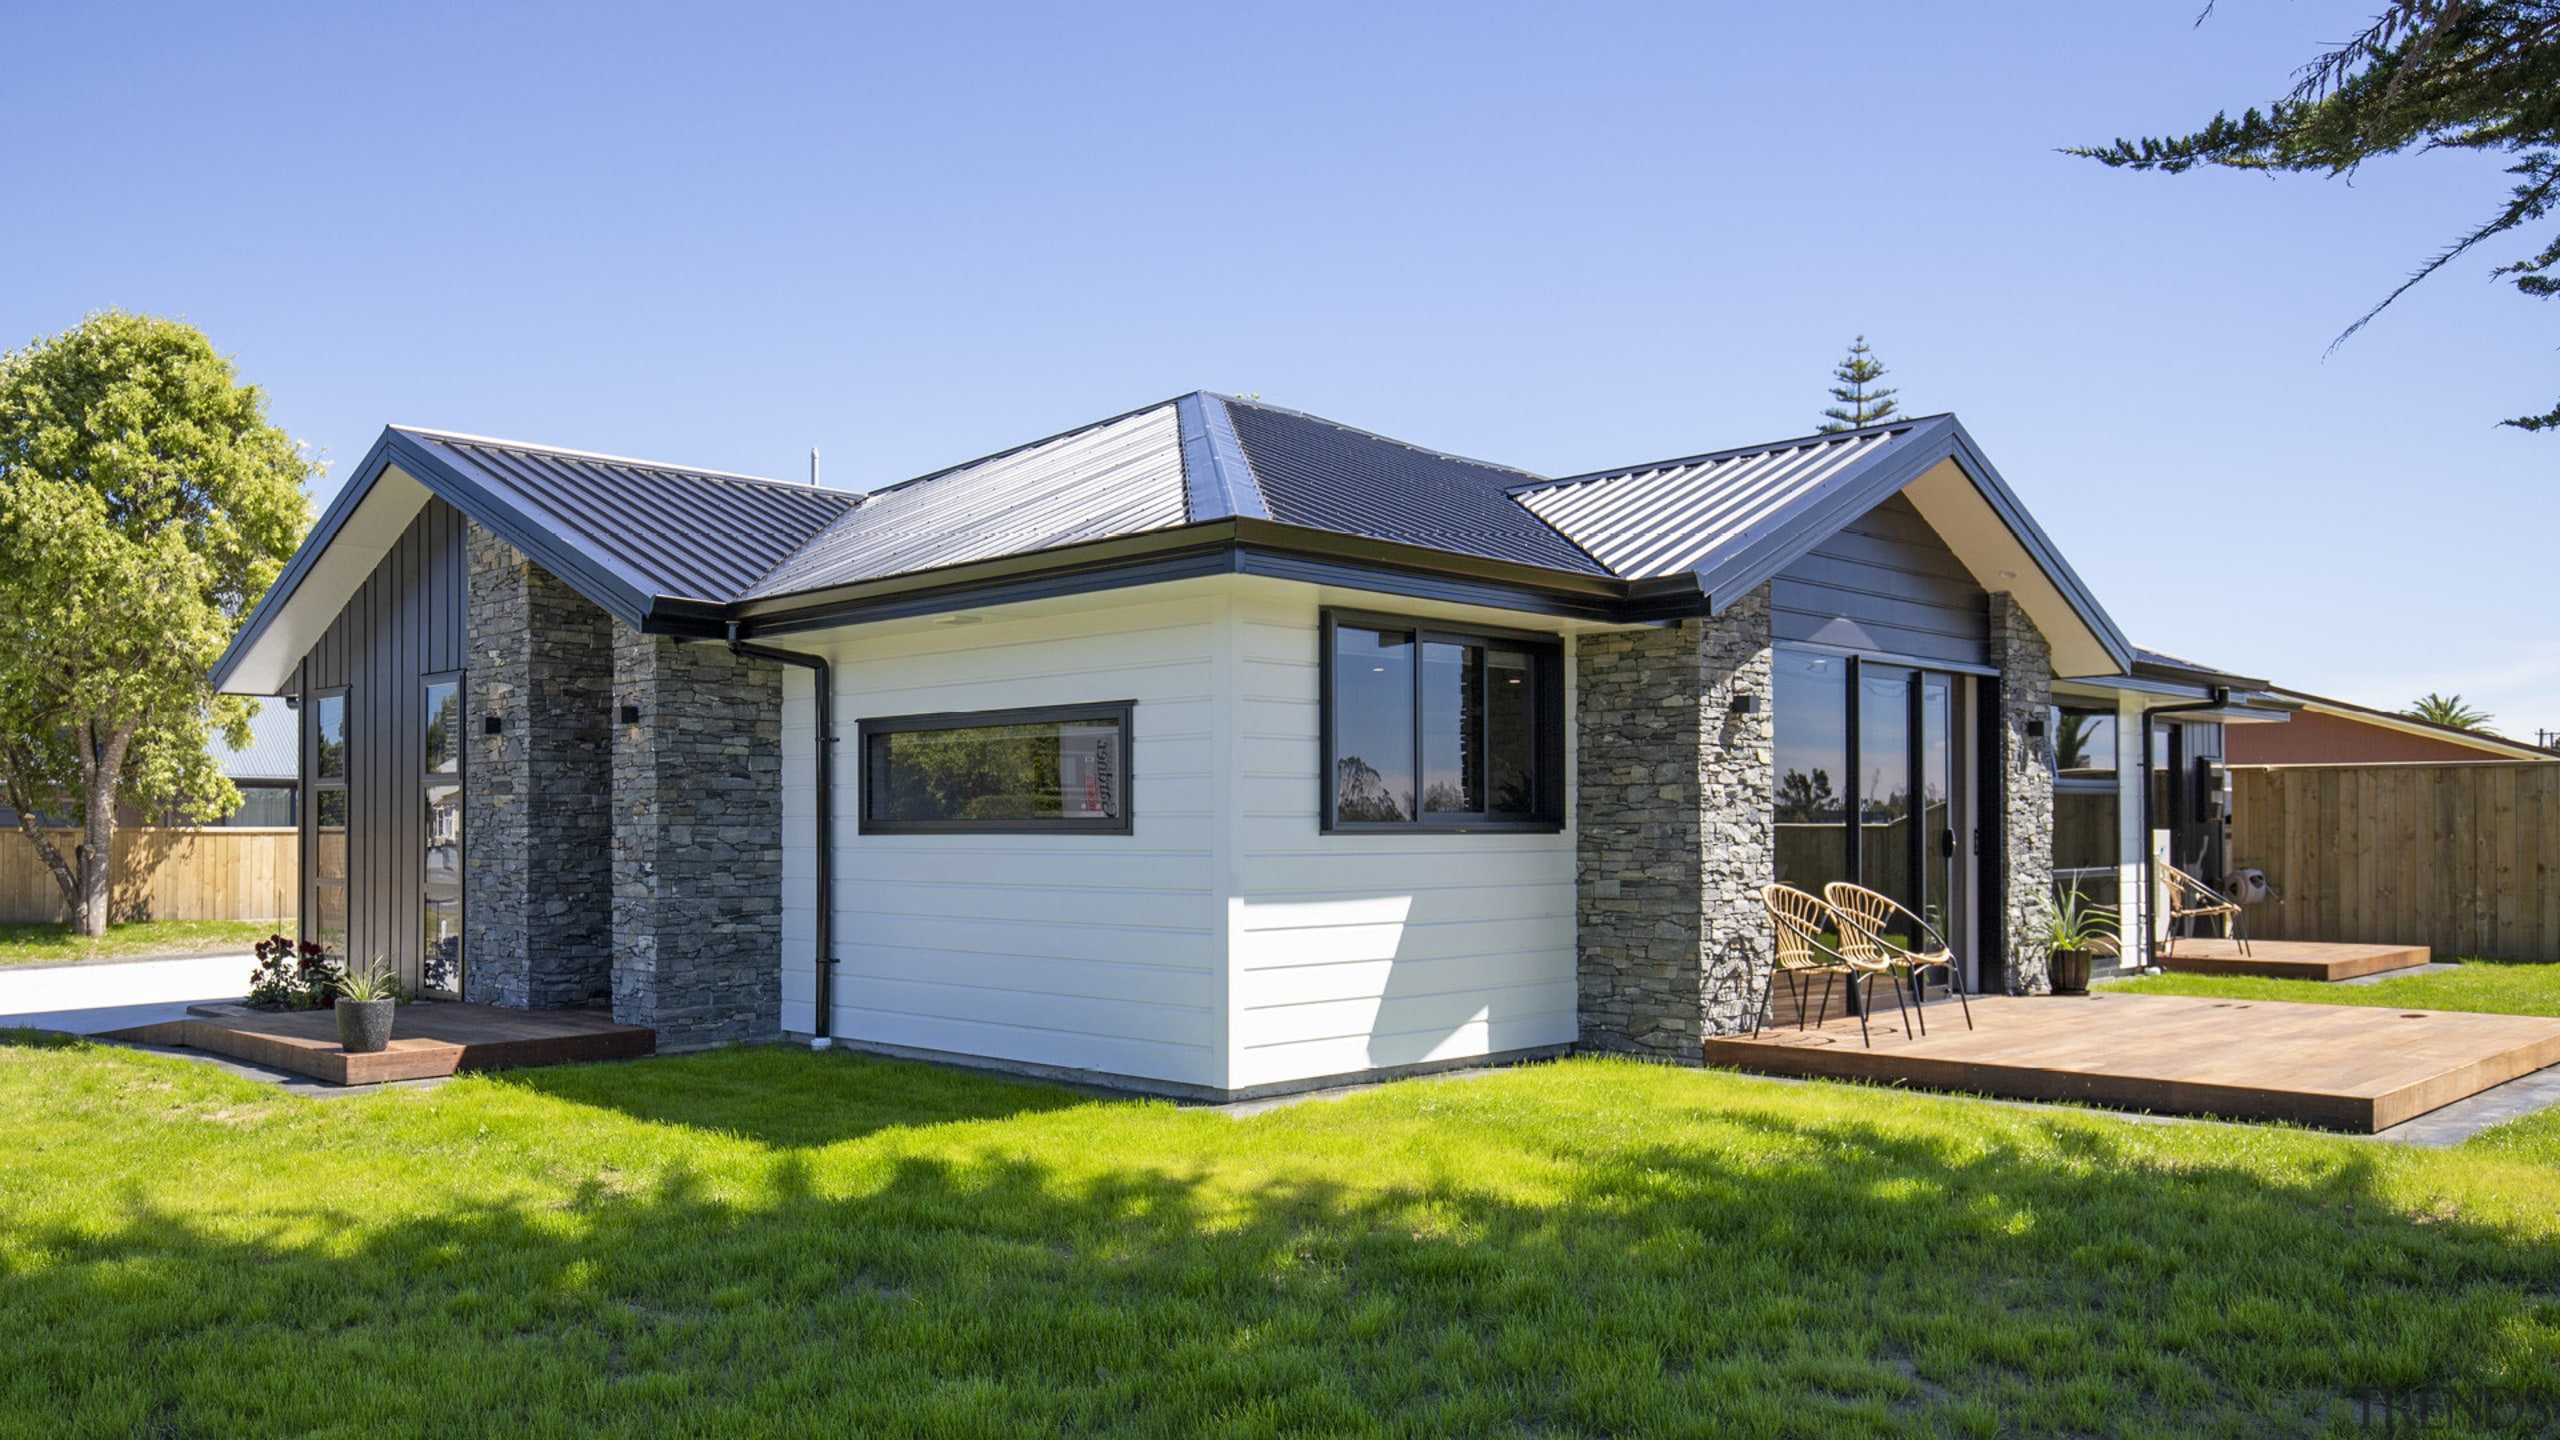 Low-upkeep Linea weatherboard is matched with schist accents